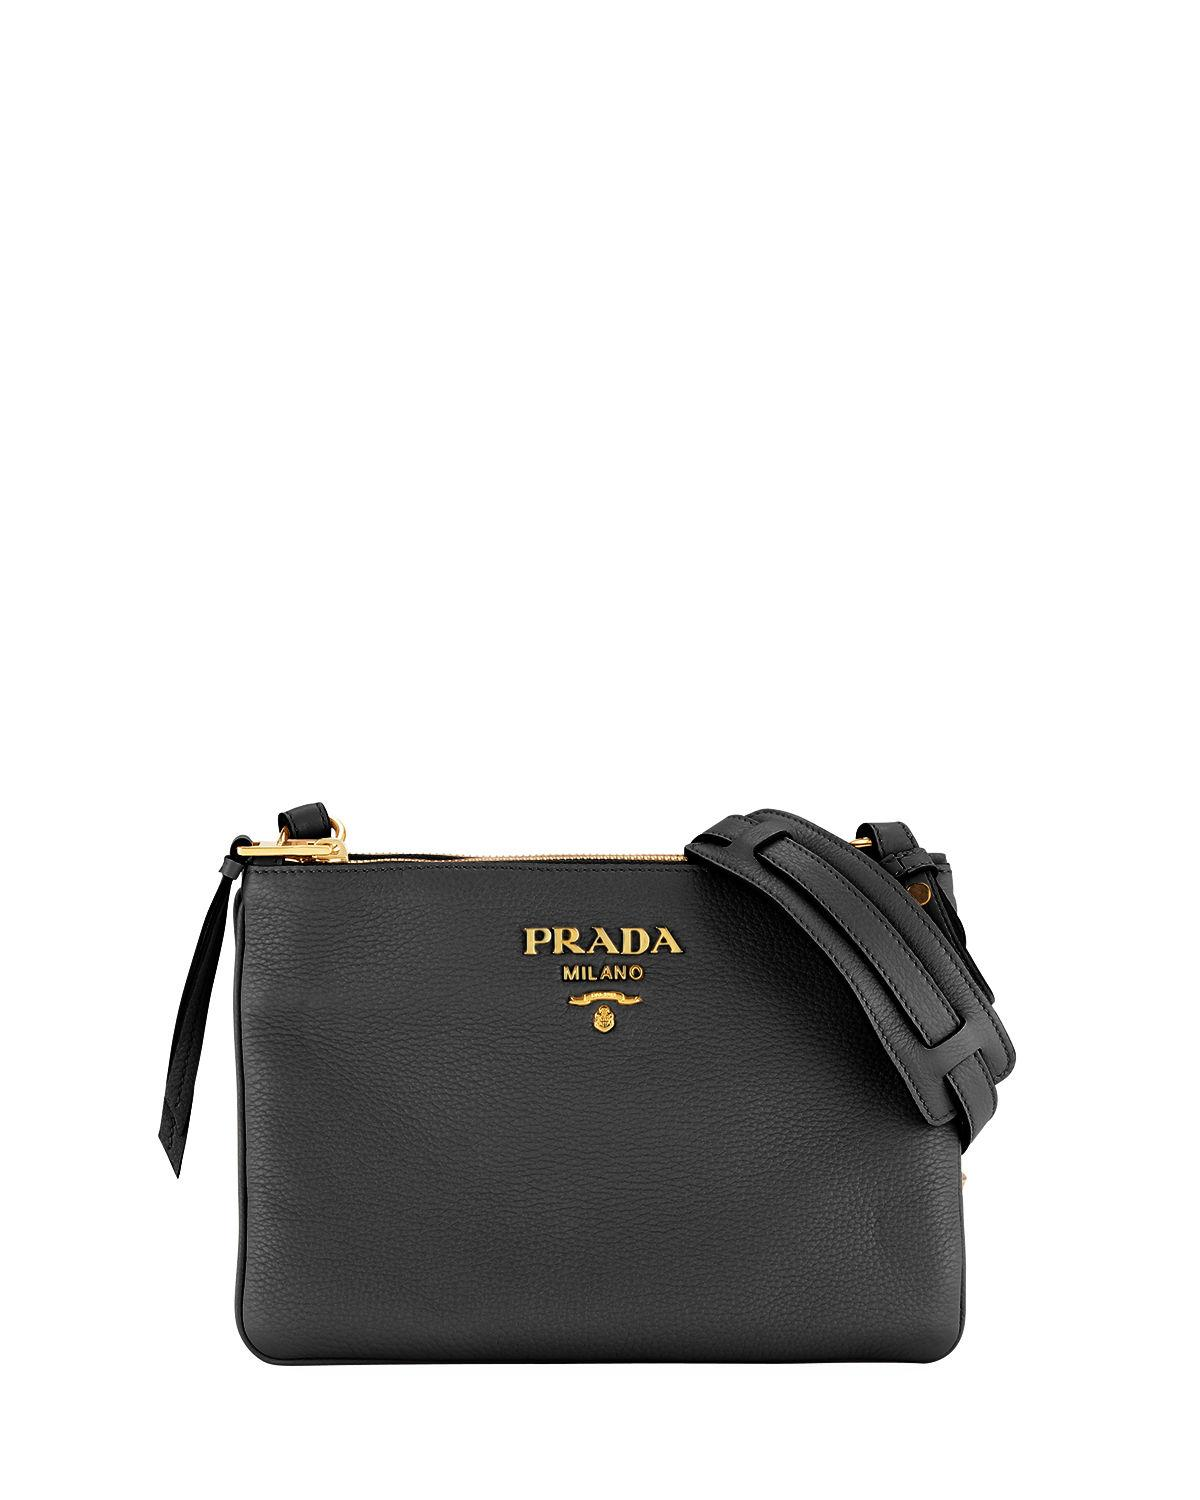 ebc3a2f3ca10da Prada Daino Crossbody Bag In Black | ModeSens